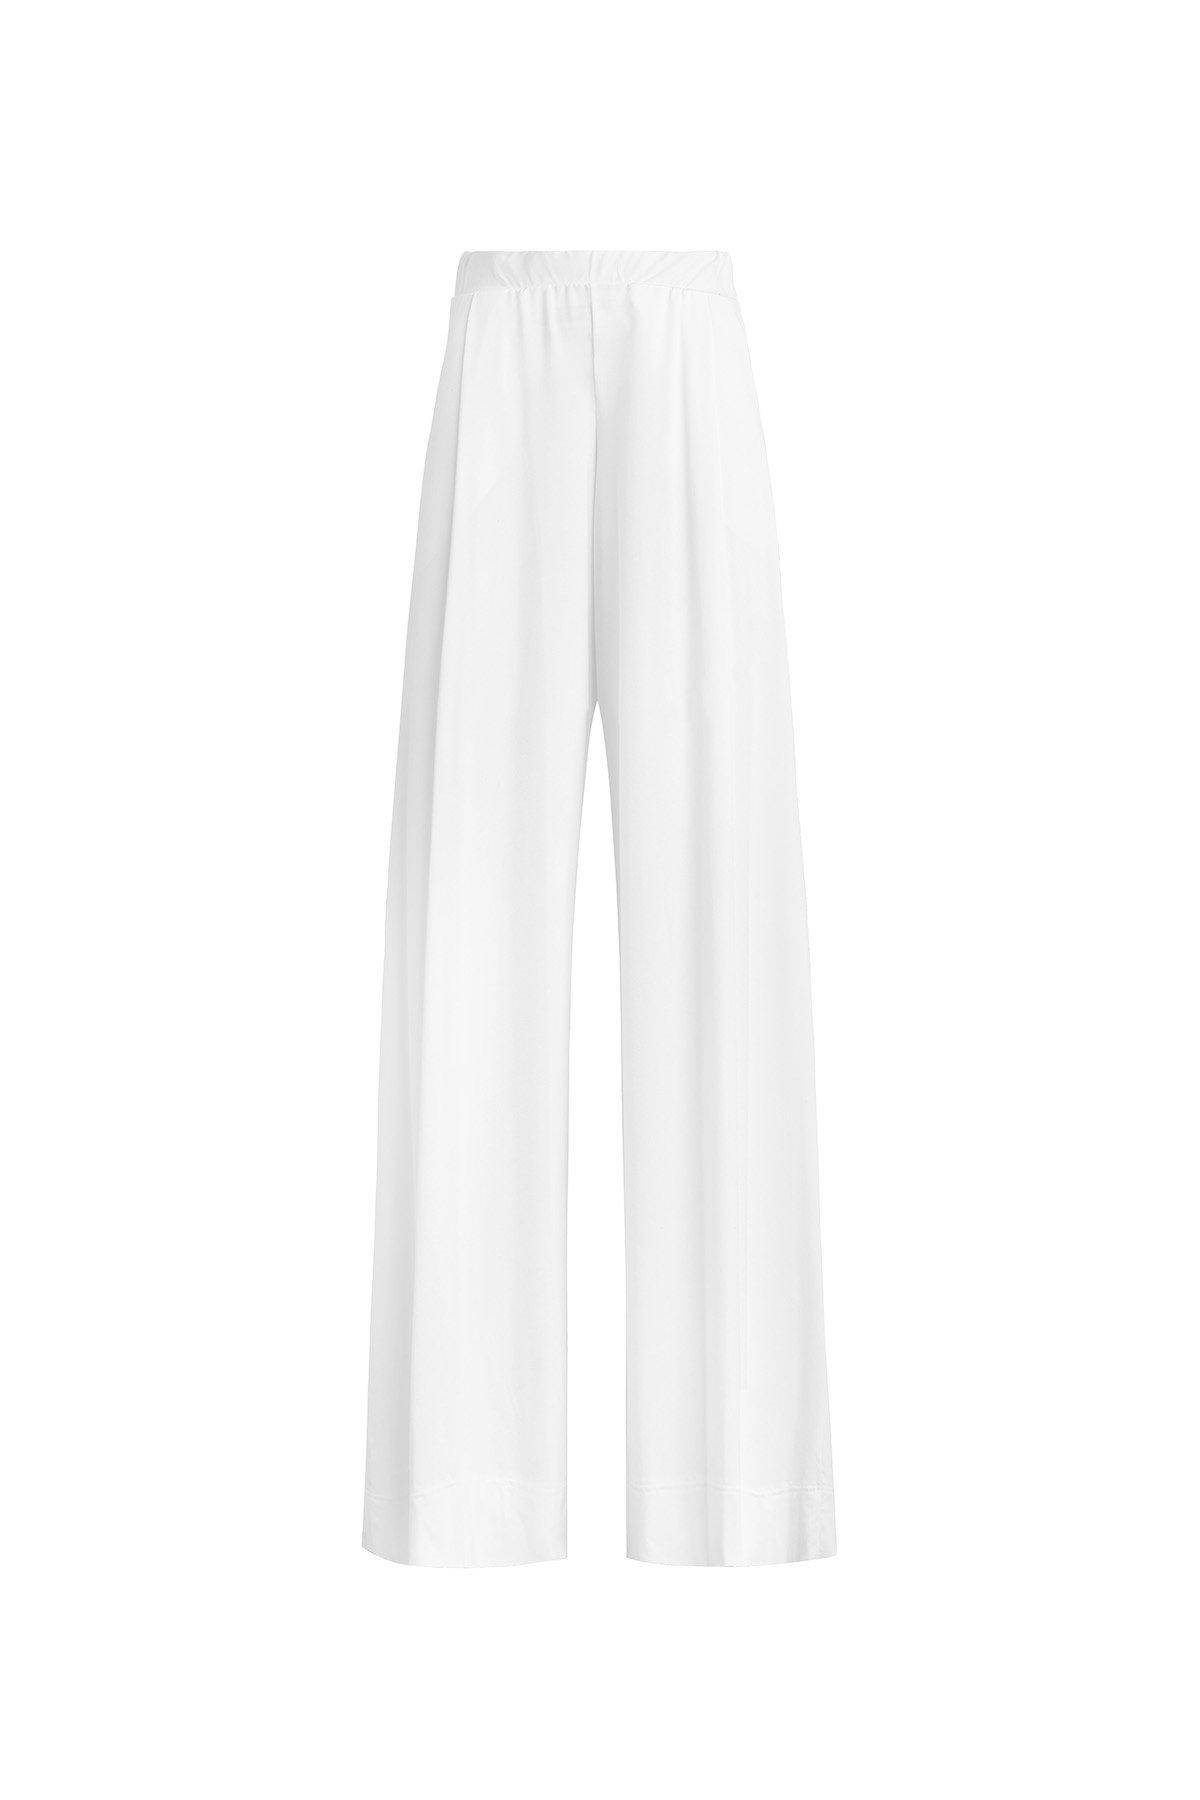 Dylan Baggy High Waist Pant - White 3